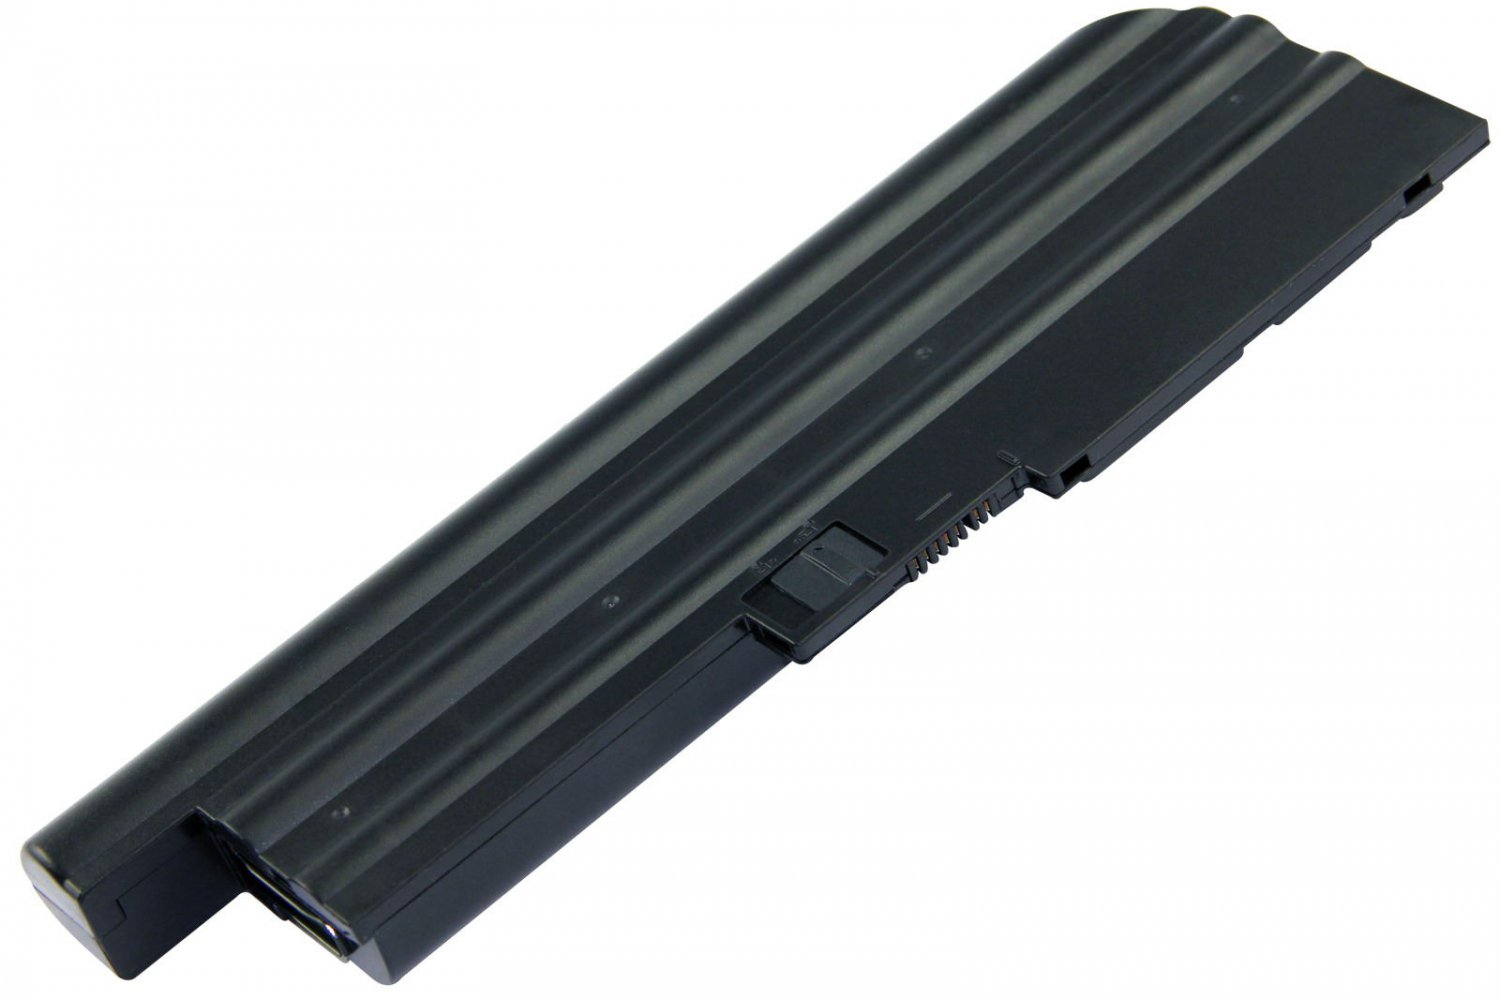 IB-T60 10.8V 7800 9cell Laptop Battery for Lenovo ThinkPad R60 R60e R61 R61e Series 101-06178-11023